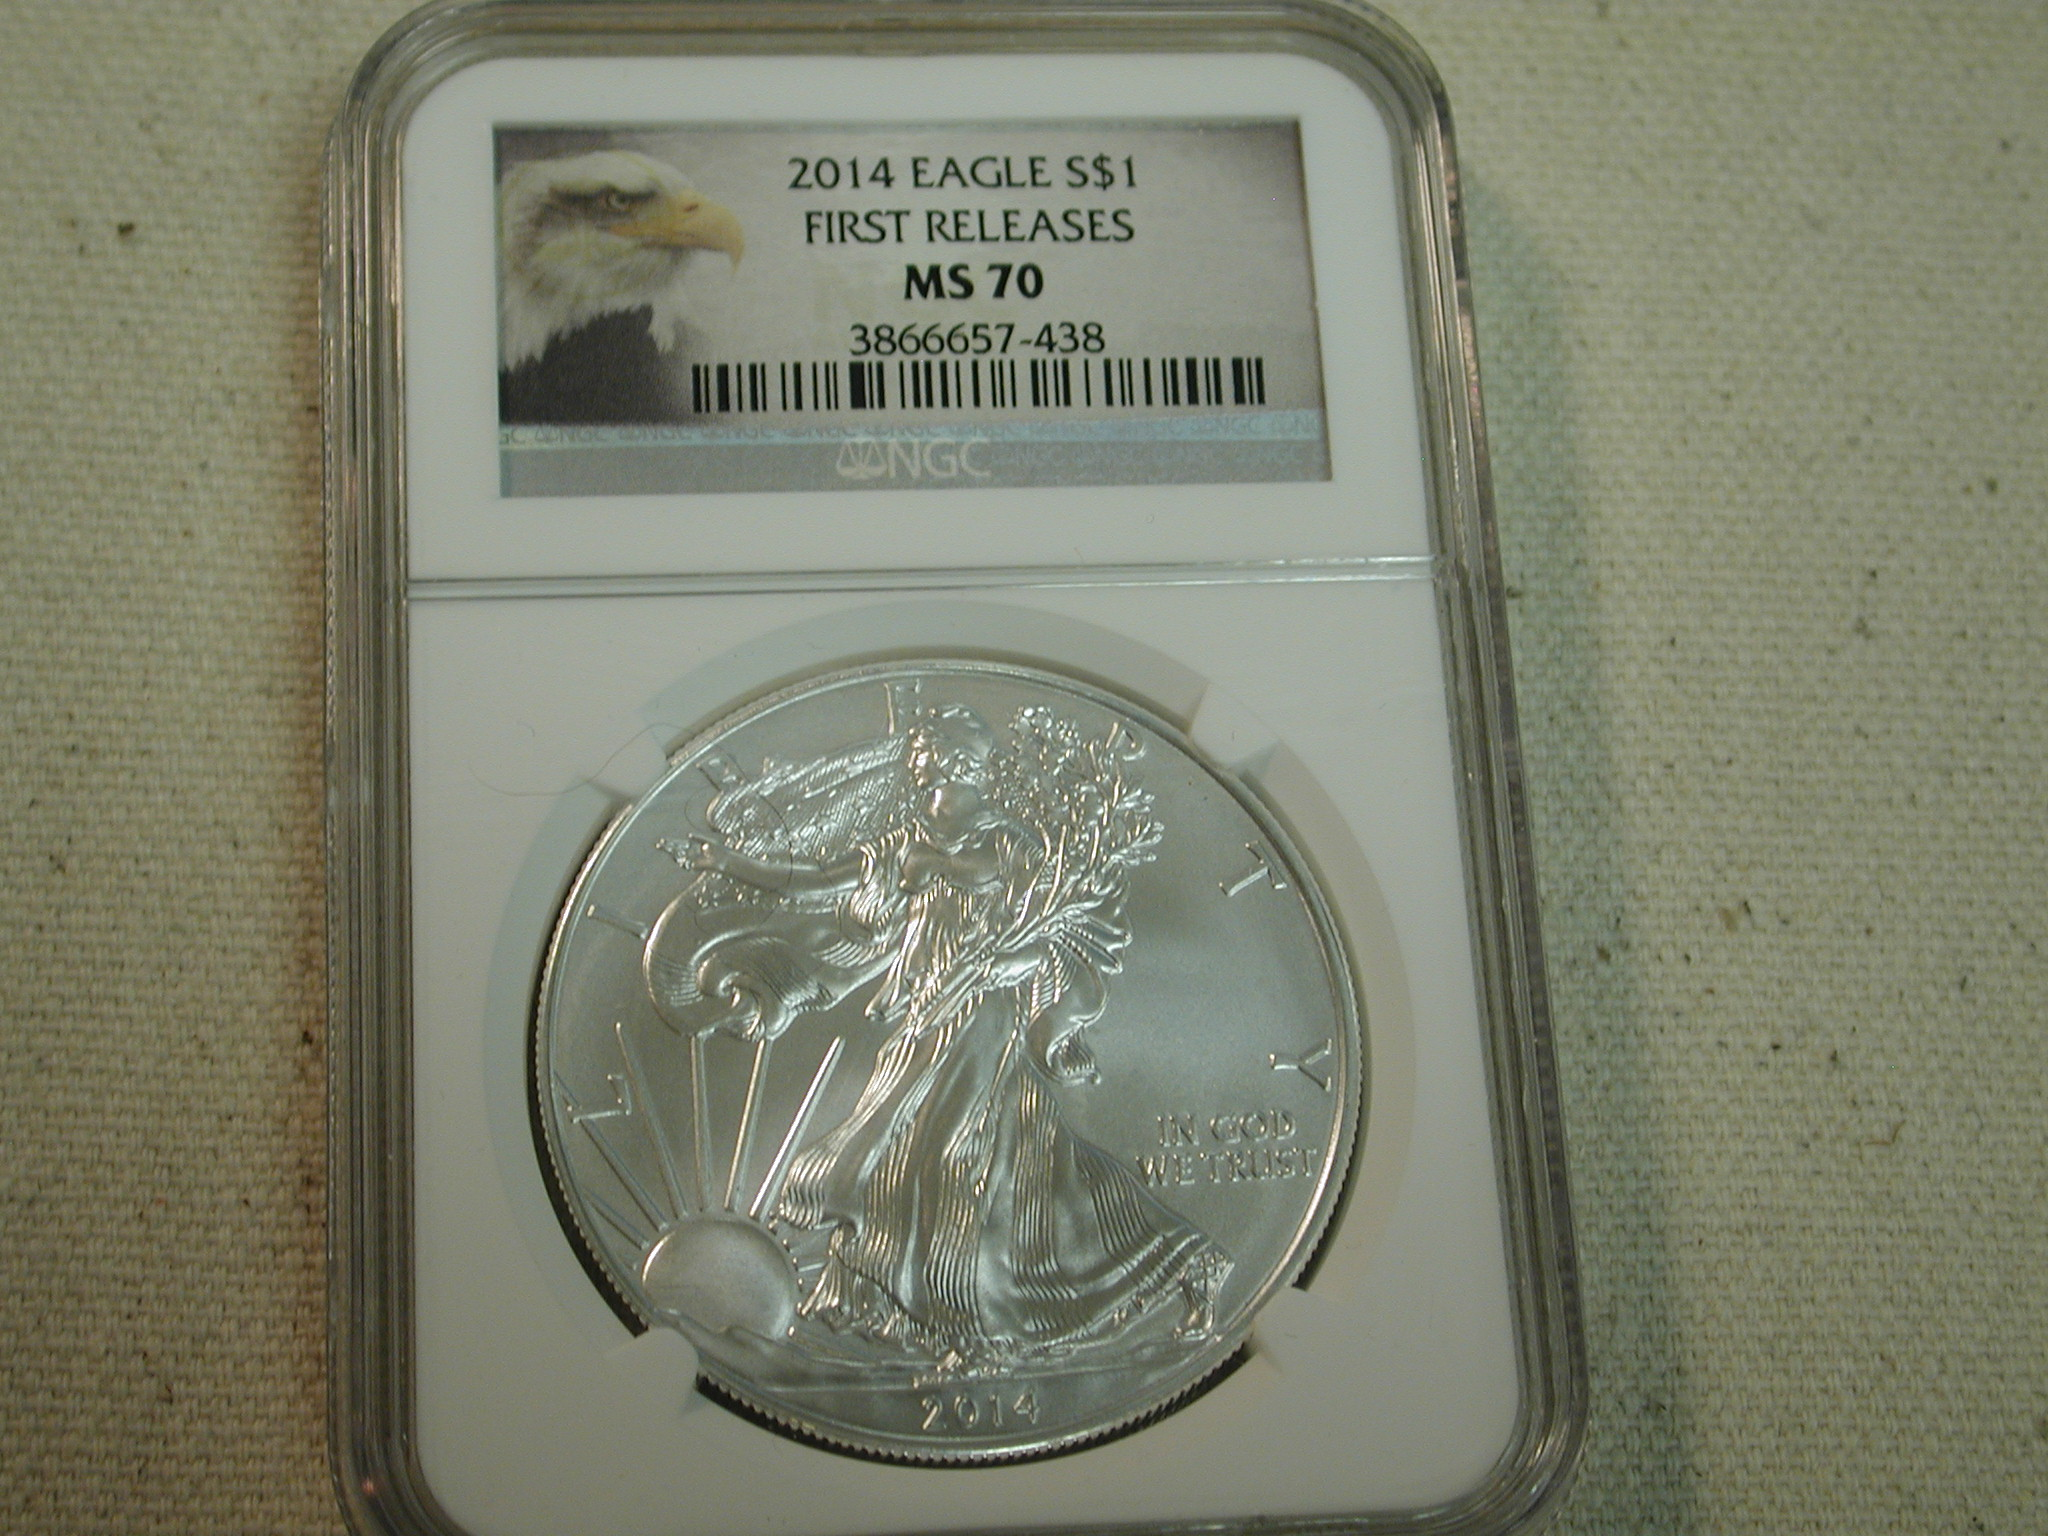 2014 Eagle S$1 First Releases MS70 NGC